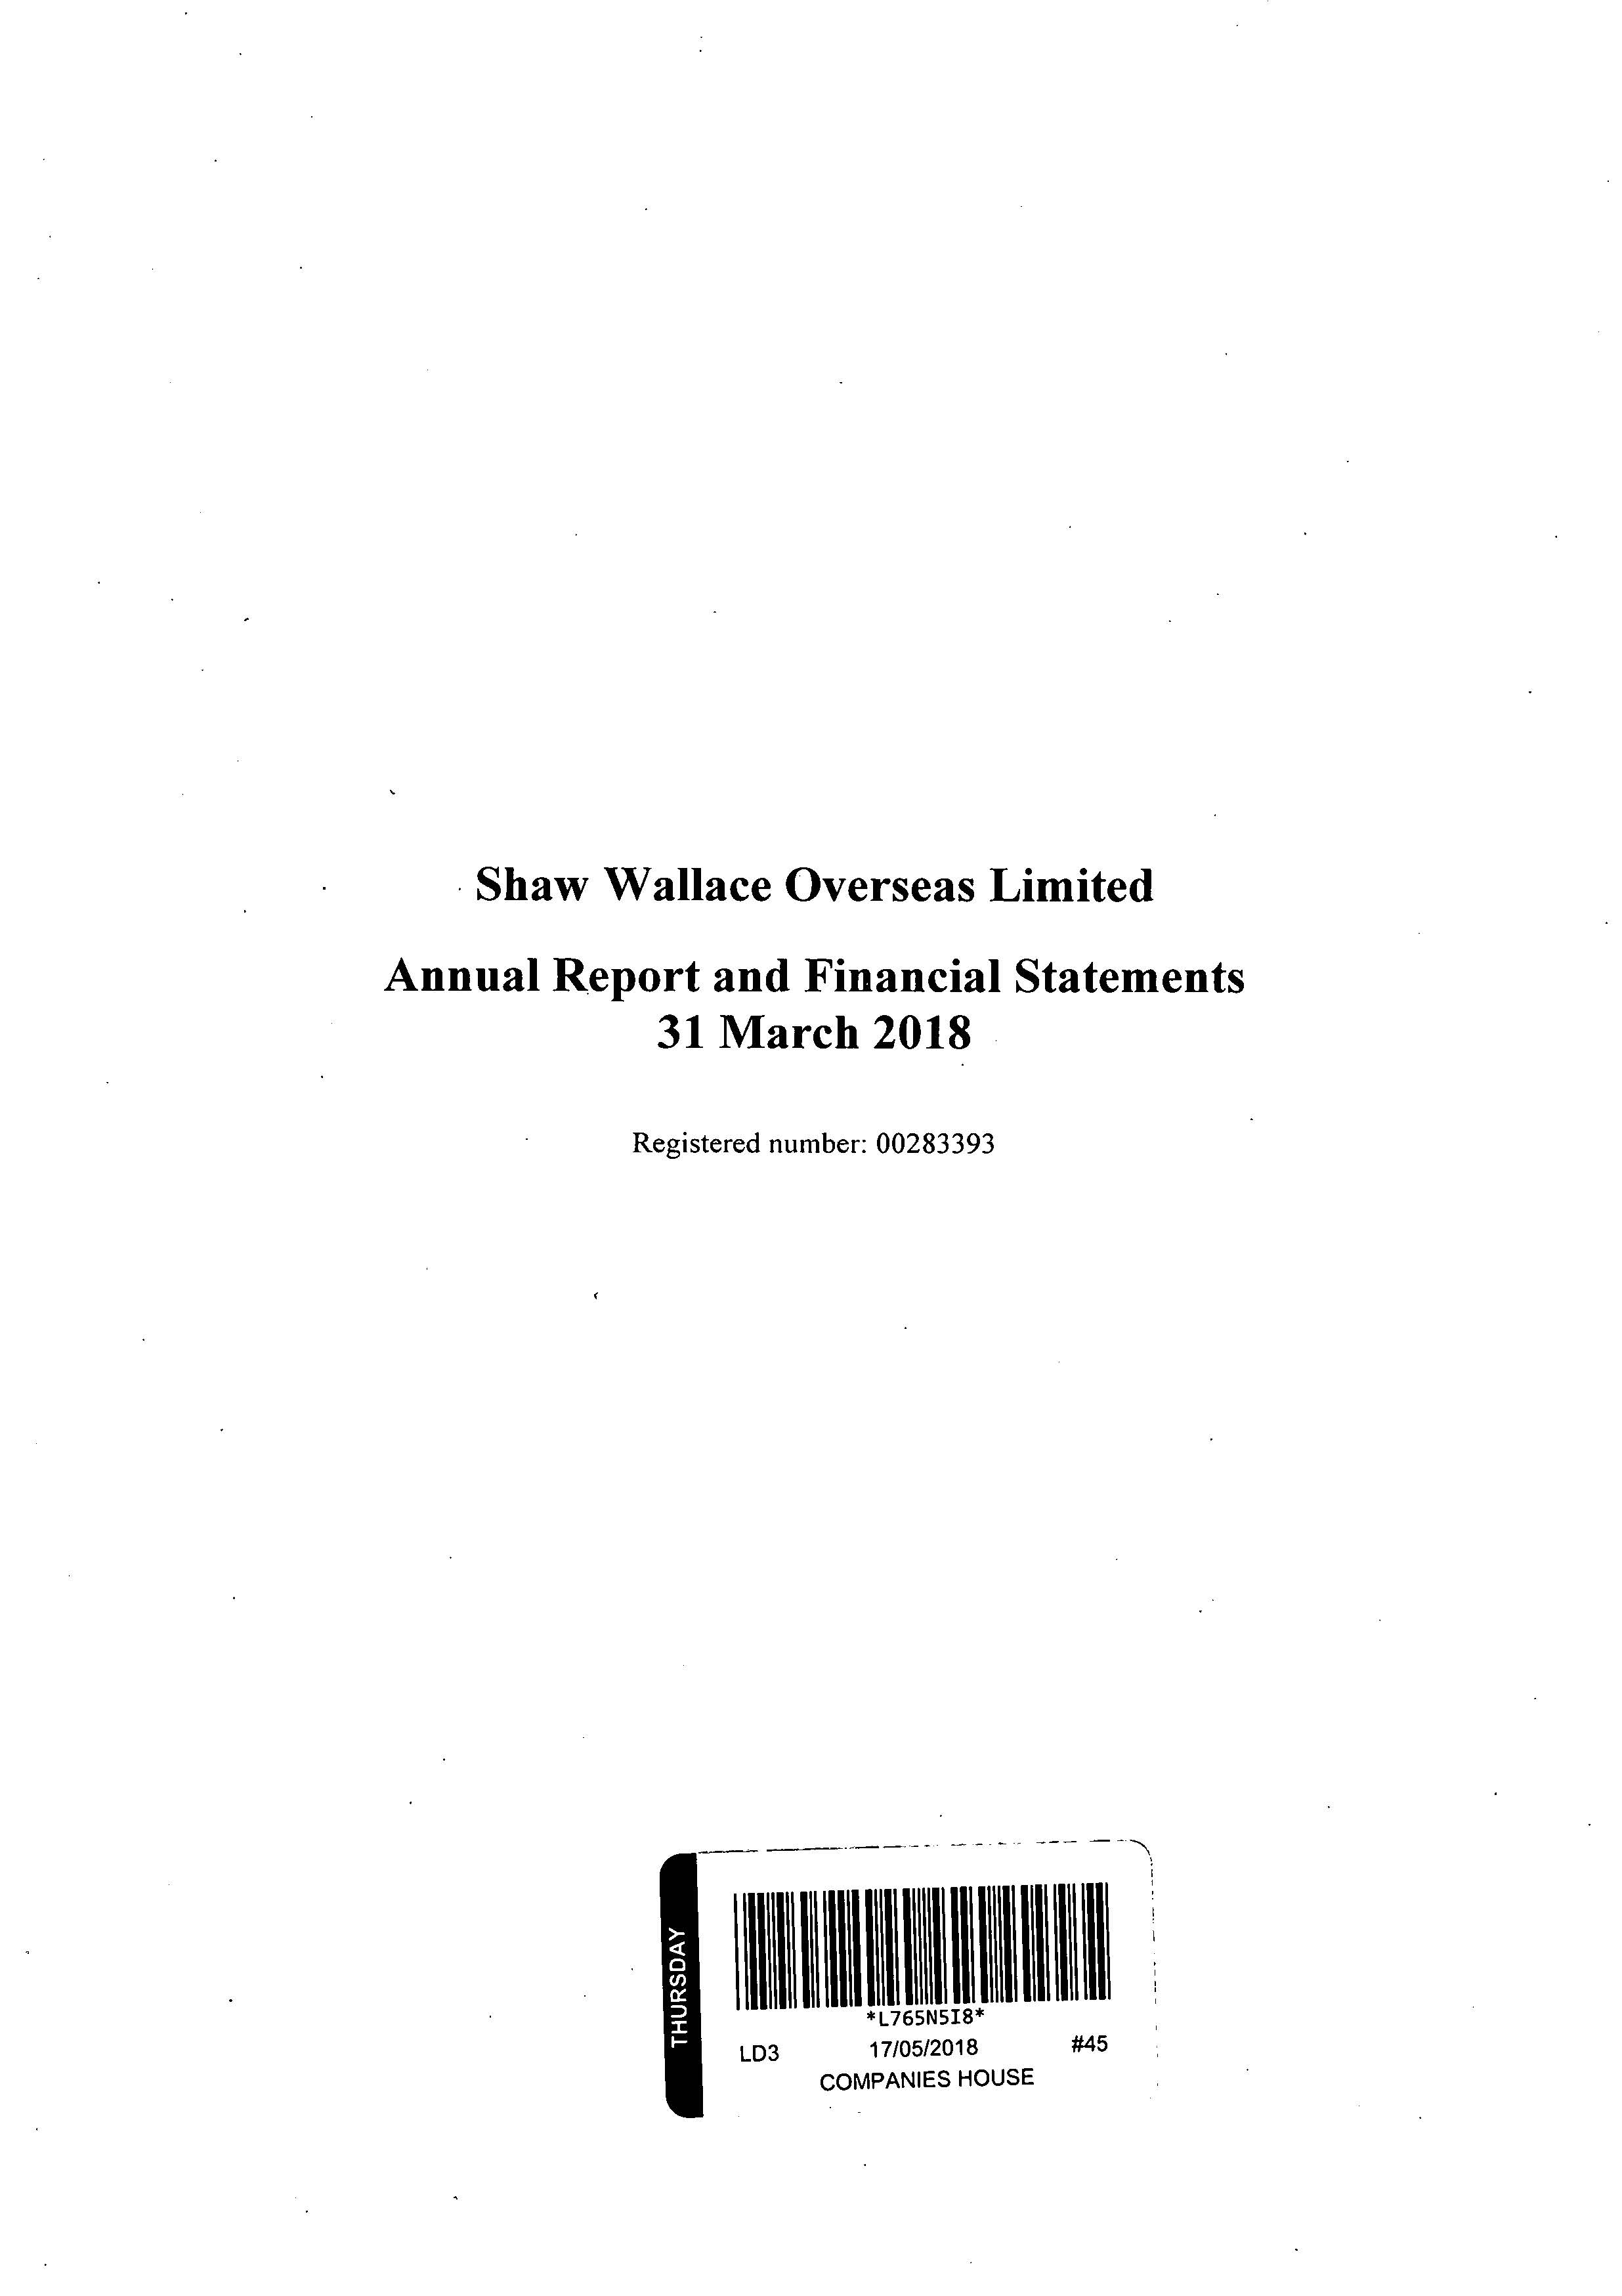 Shaw Wallace Overseas Ltd 2017-2018